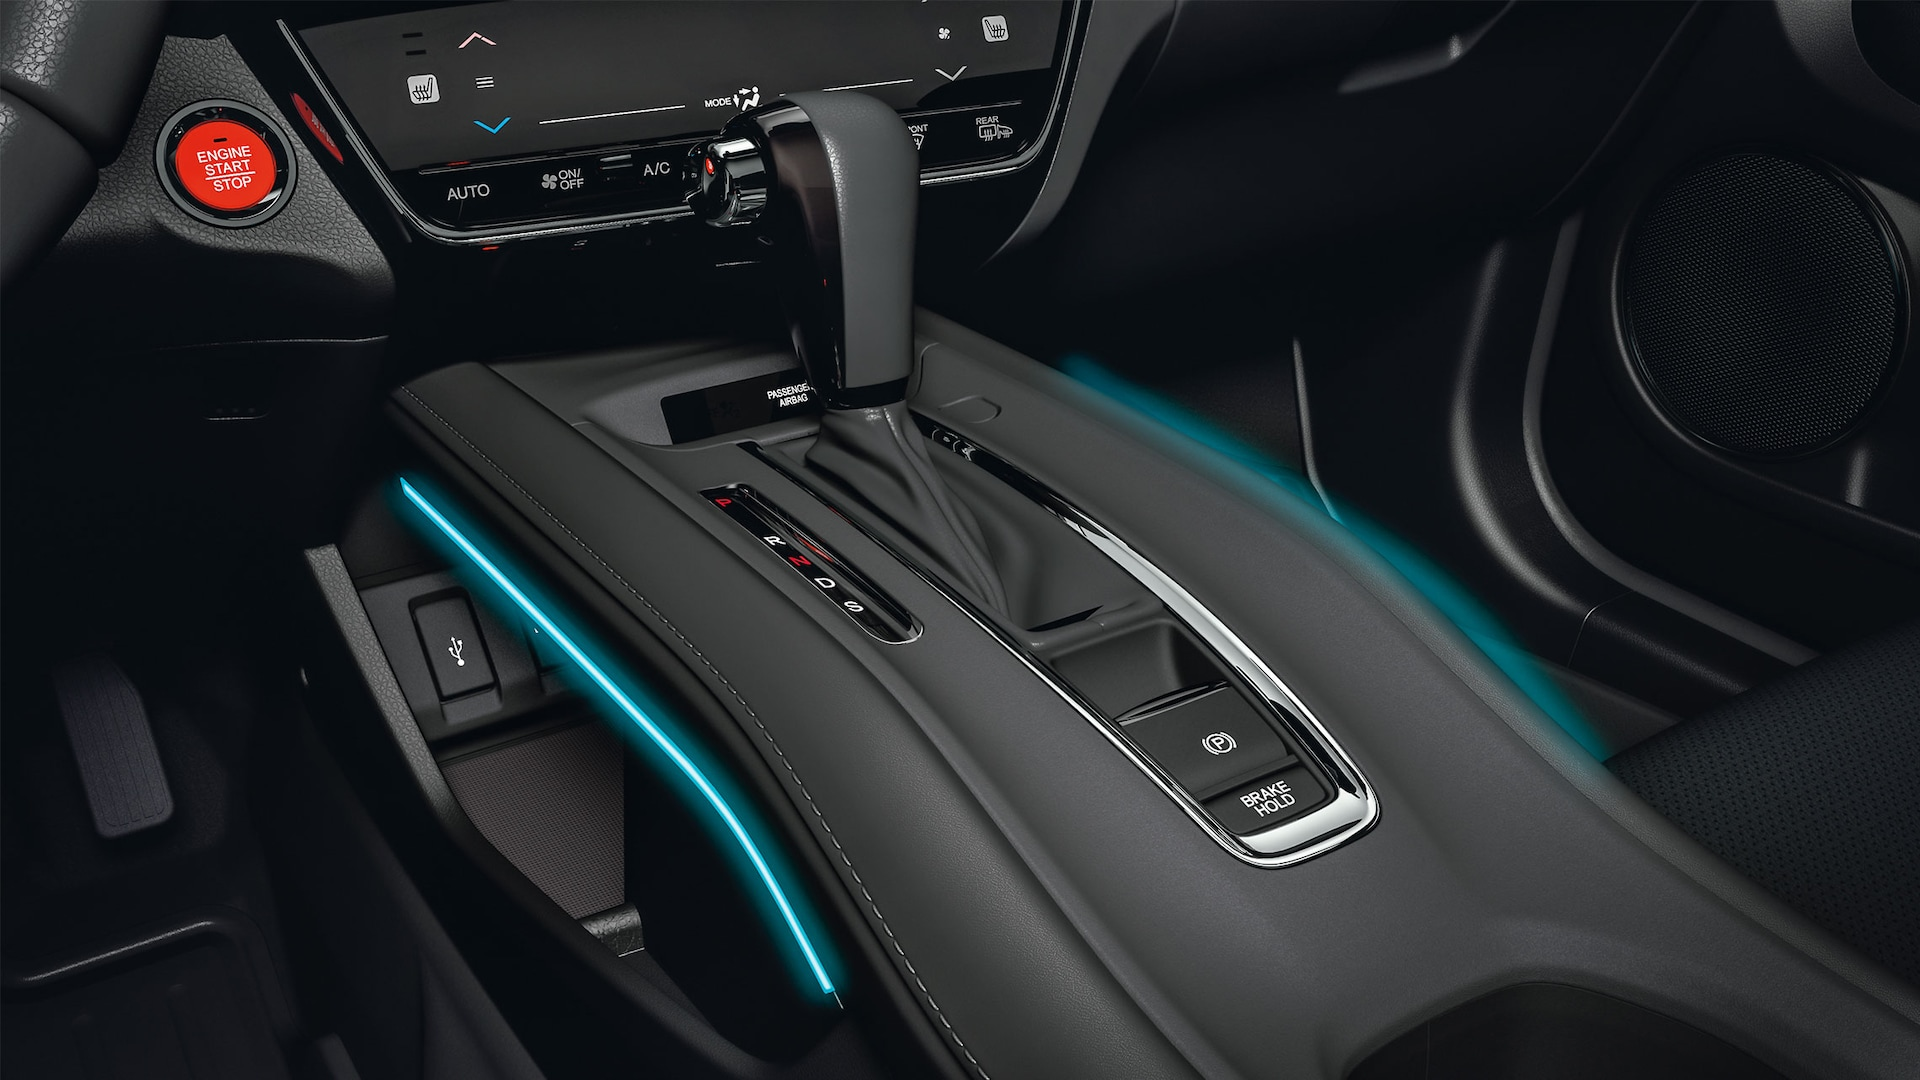 Illuminated center console detail in the 2020 Honda HR-V.